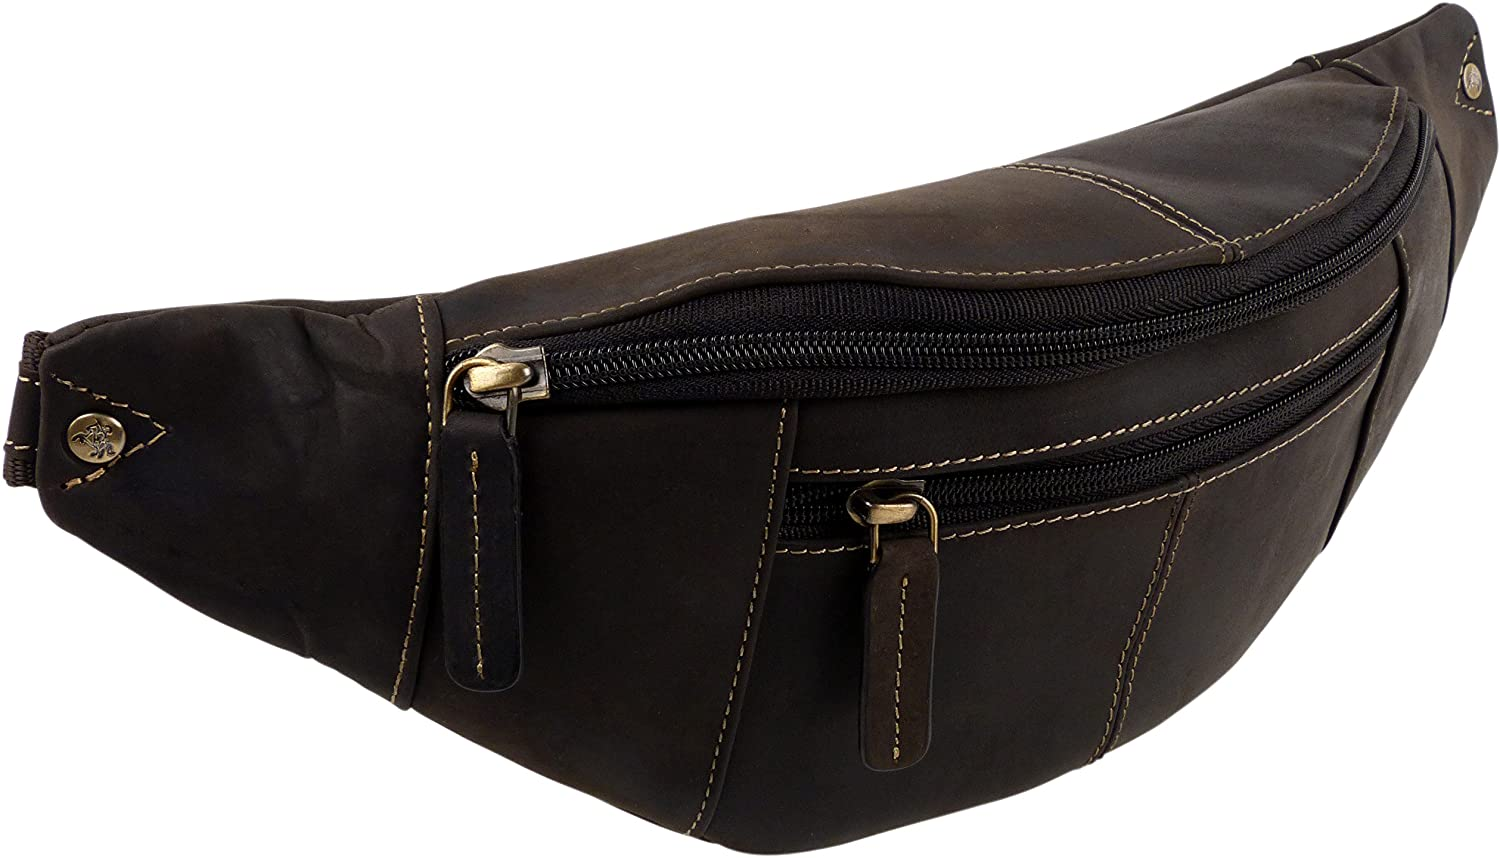 Visconti Oil Leather Waist Bum Bag by Fanny Pack Top Travel Handy Oil Brown